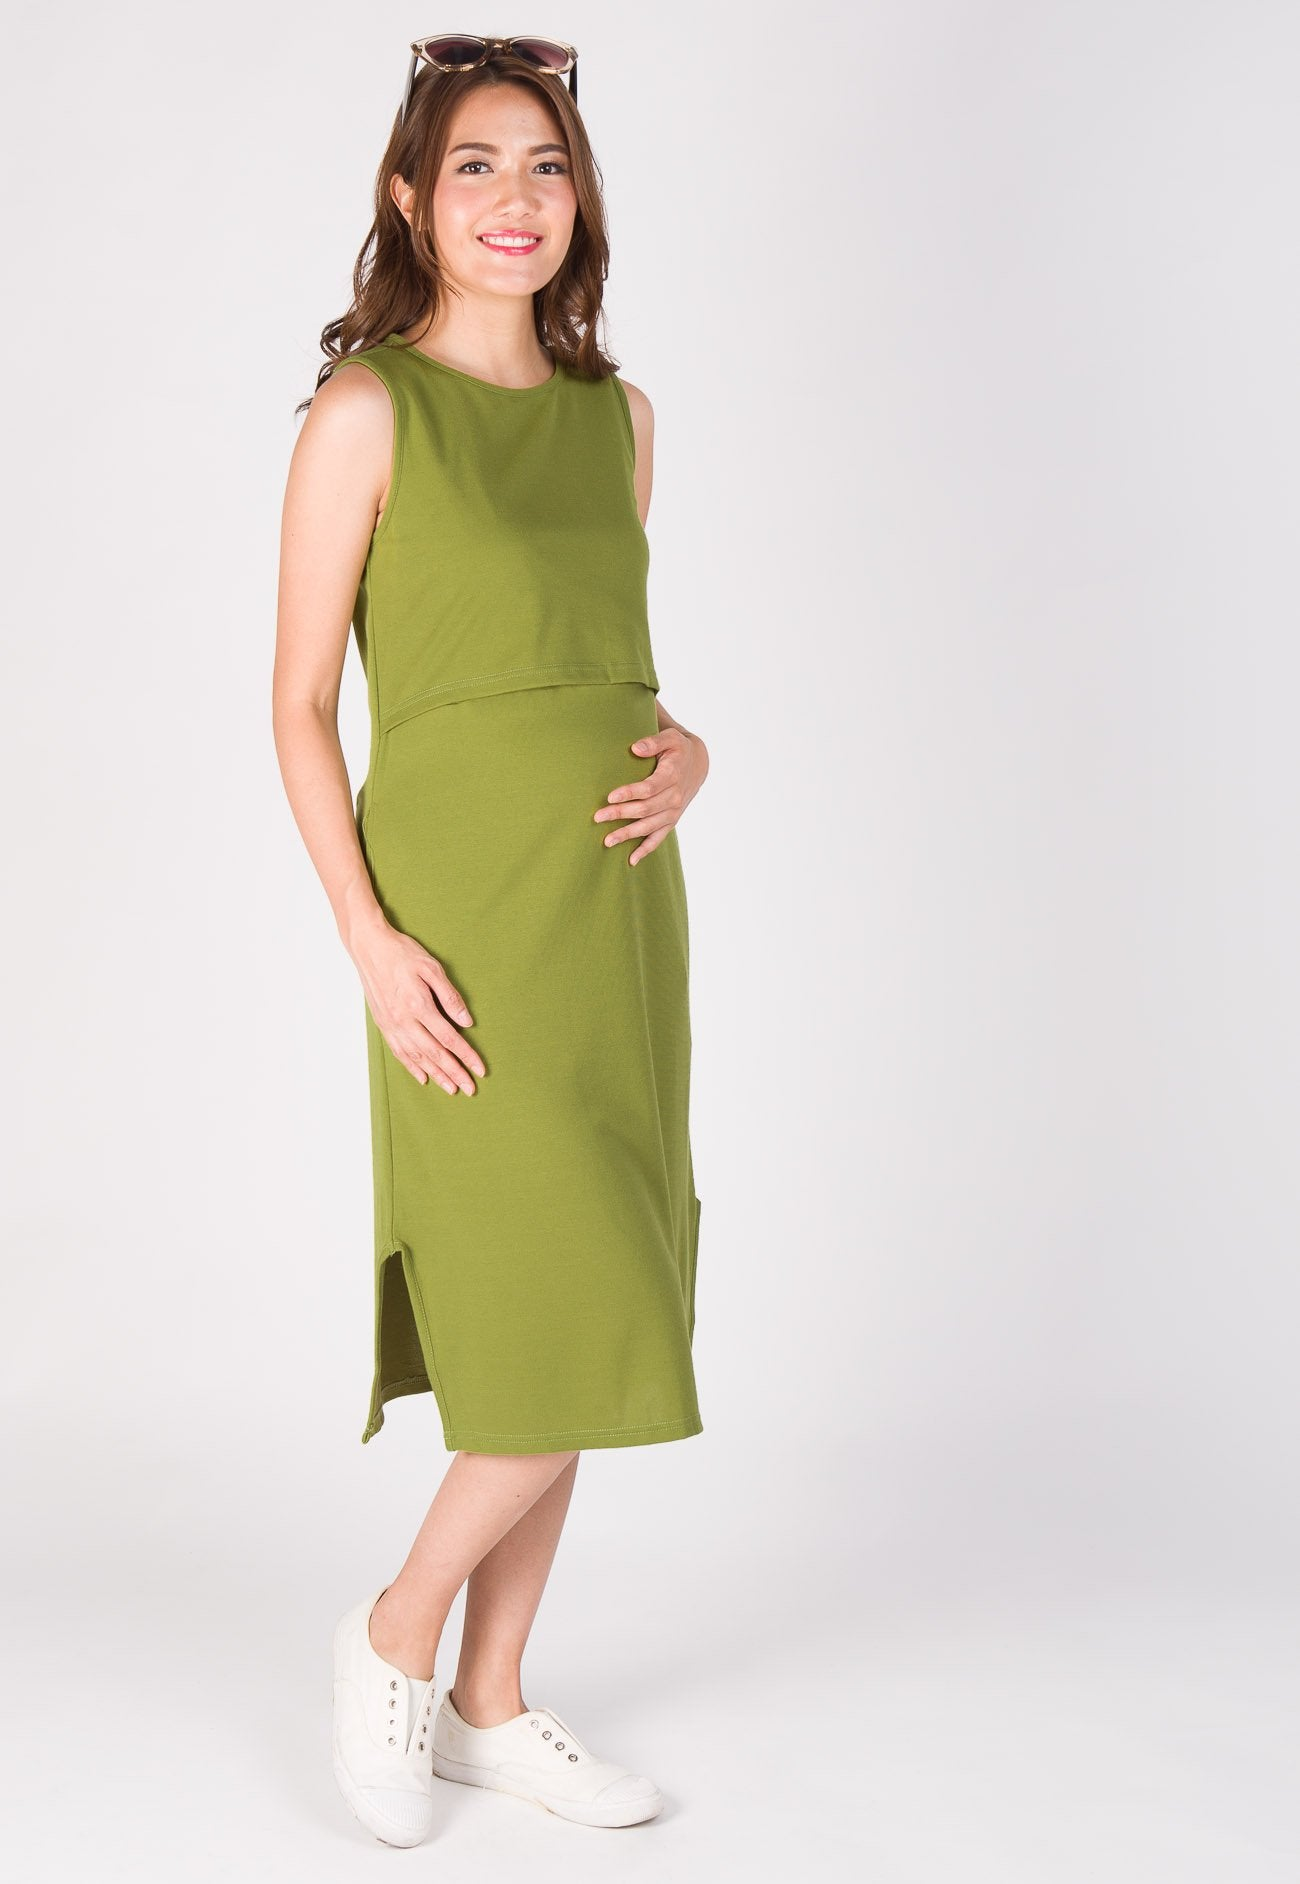 Sleek Slit Nursing Dress in Green  by Jump Eat Cry - Maternity and nursing wear